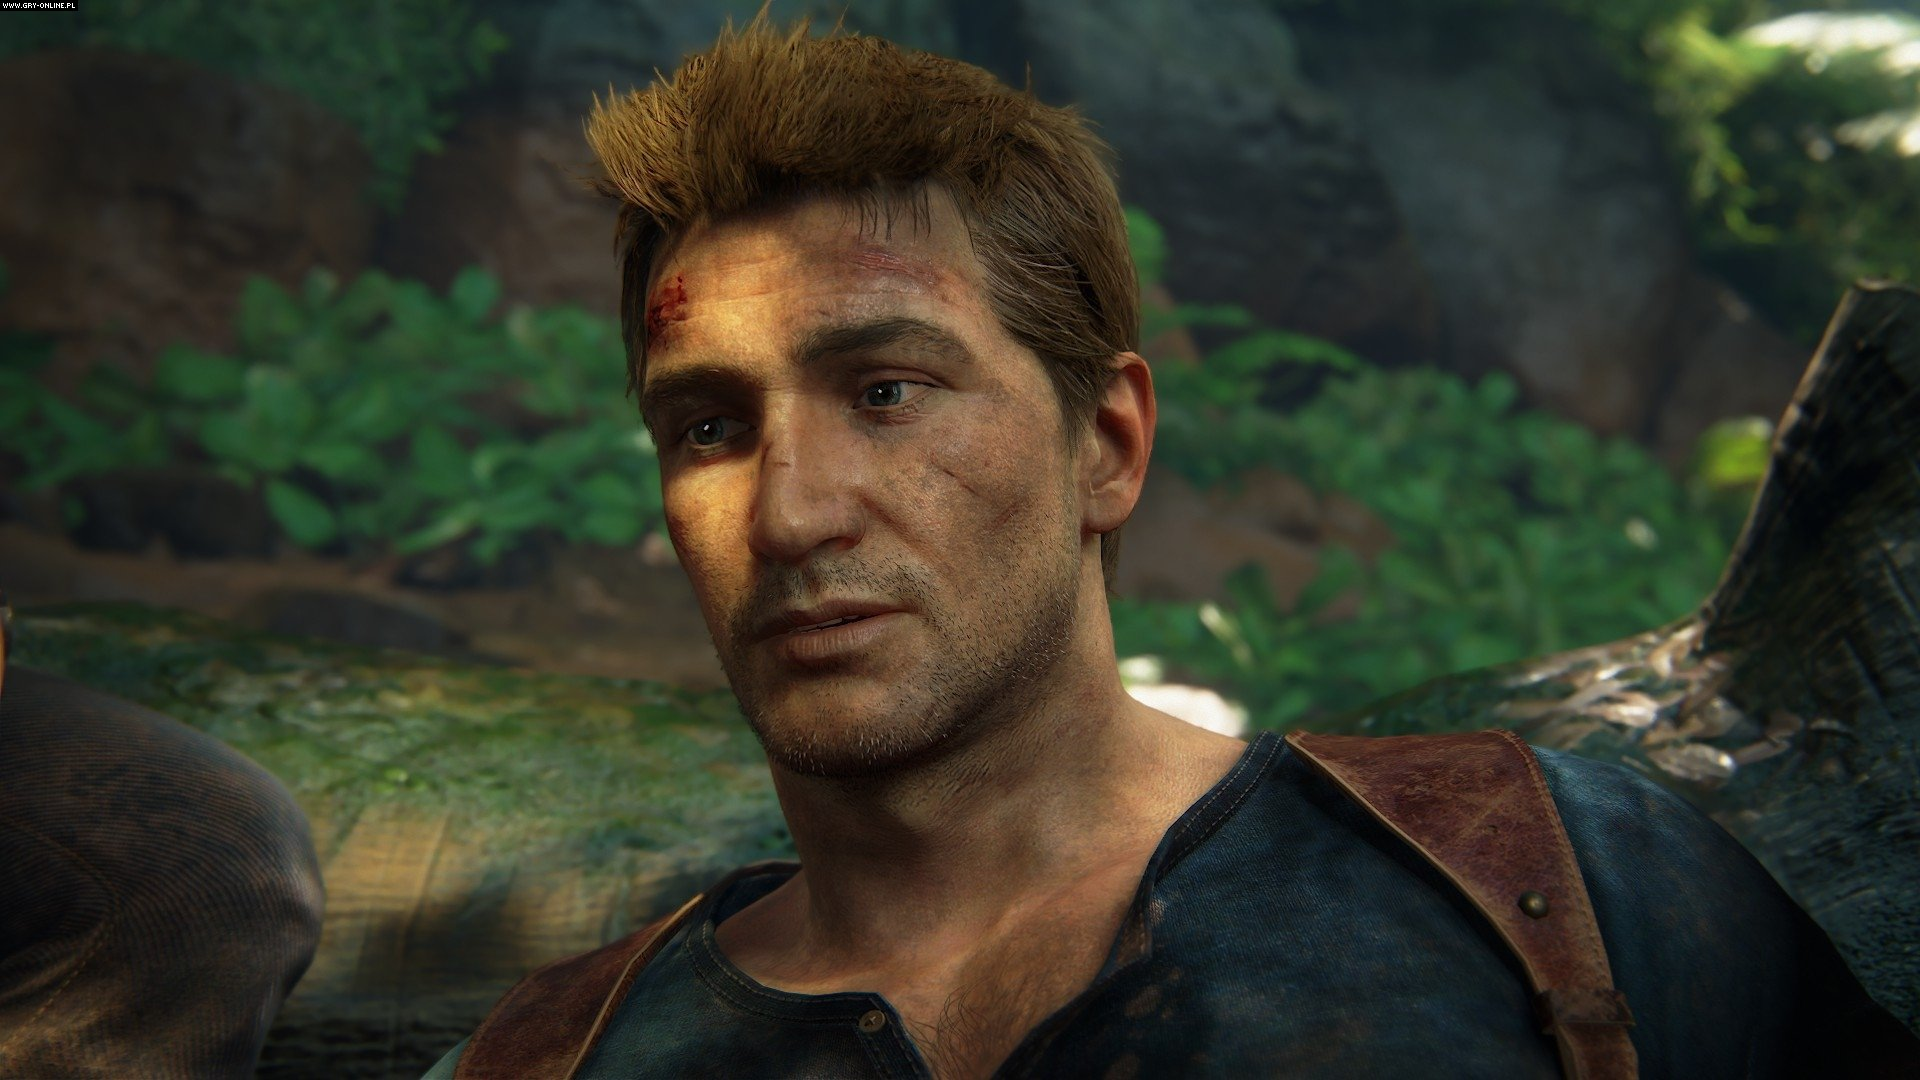 Uncharted 4: Kres Złodzieja PS4 Gry Screen 9/135, Naughty Dog, Sony Interactive Entertainment